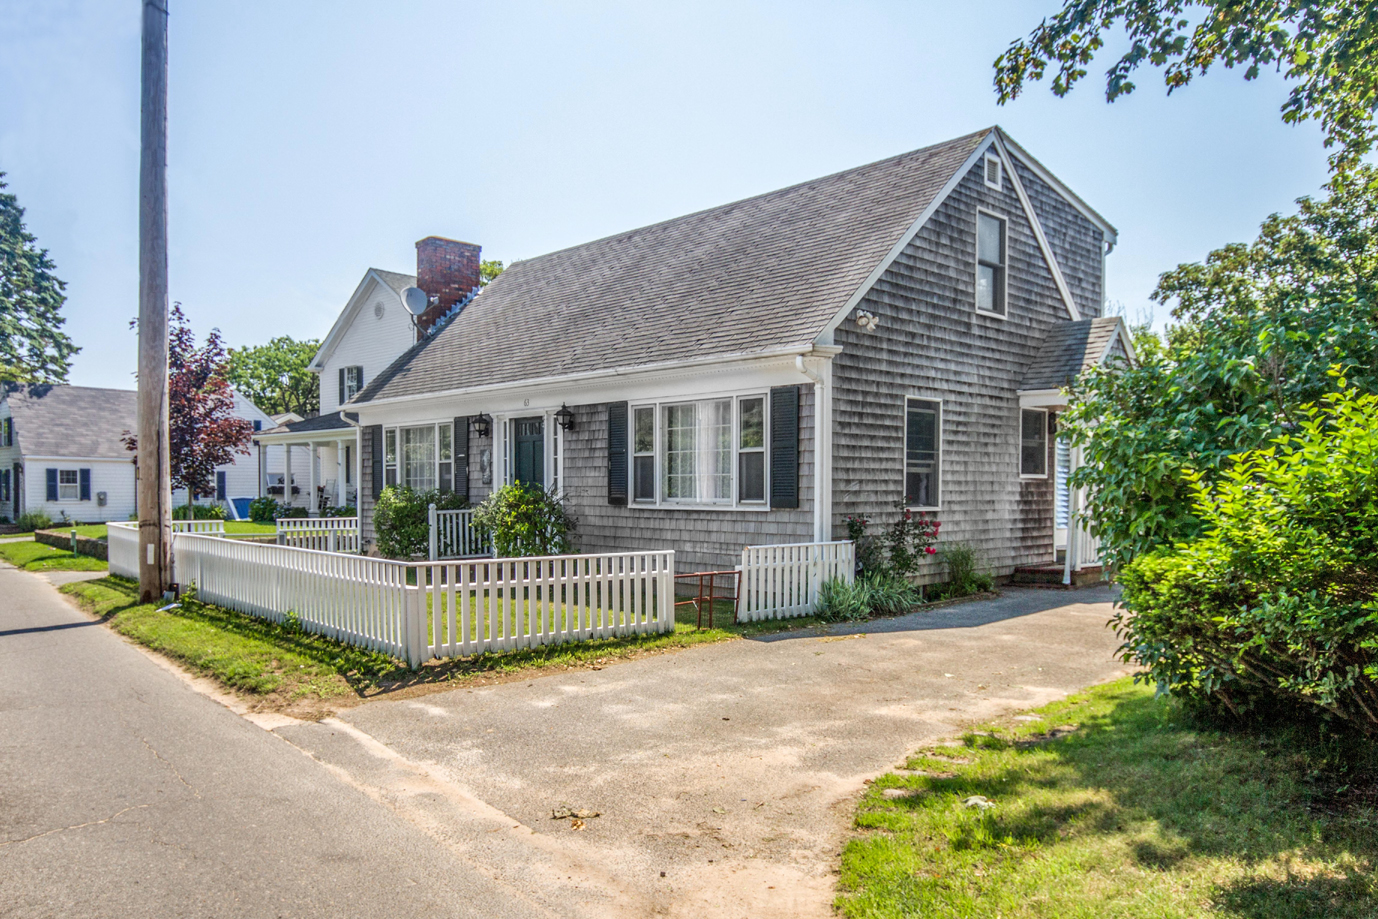 Sold Home in Martha's Vineyard